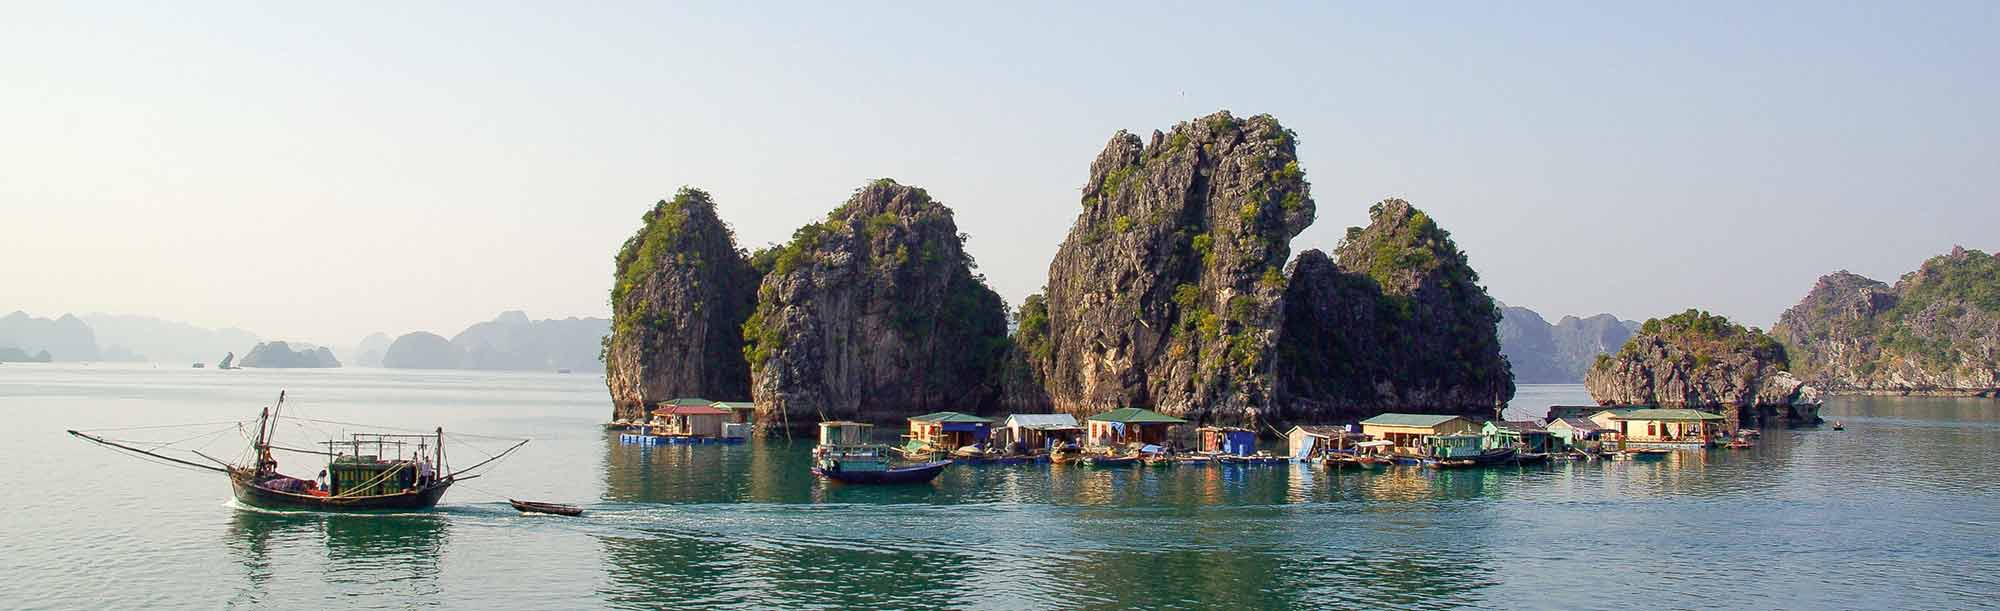 Ha-Long-Bucht in Vietnam